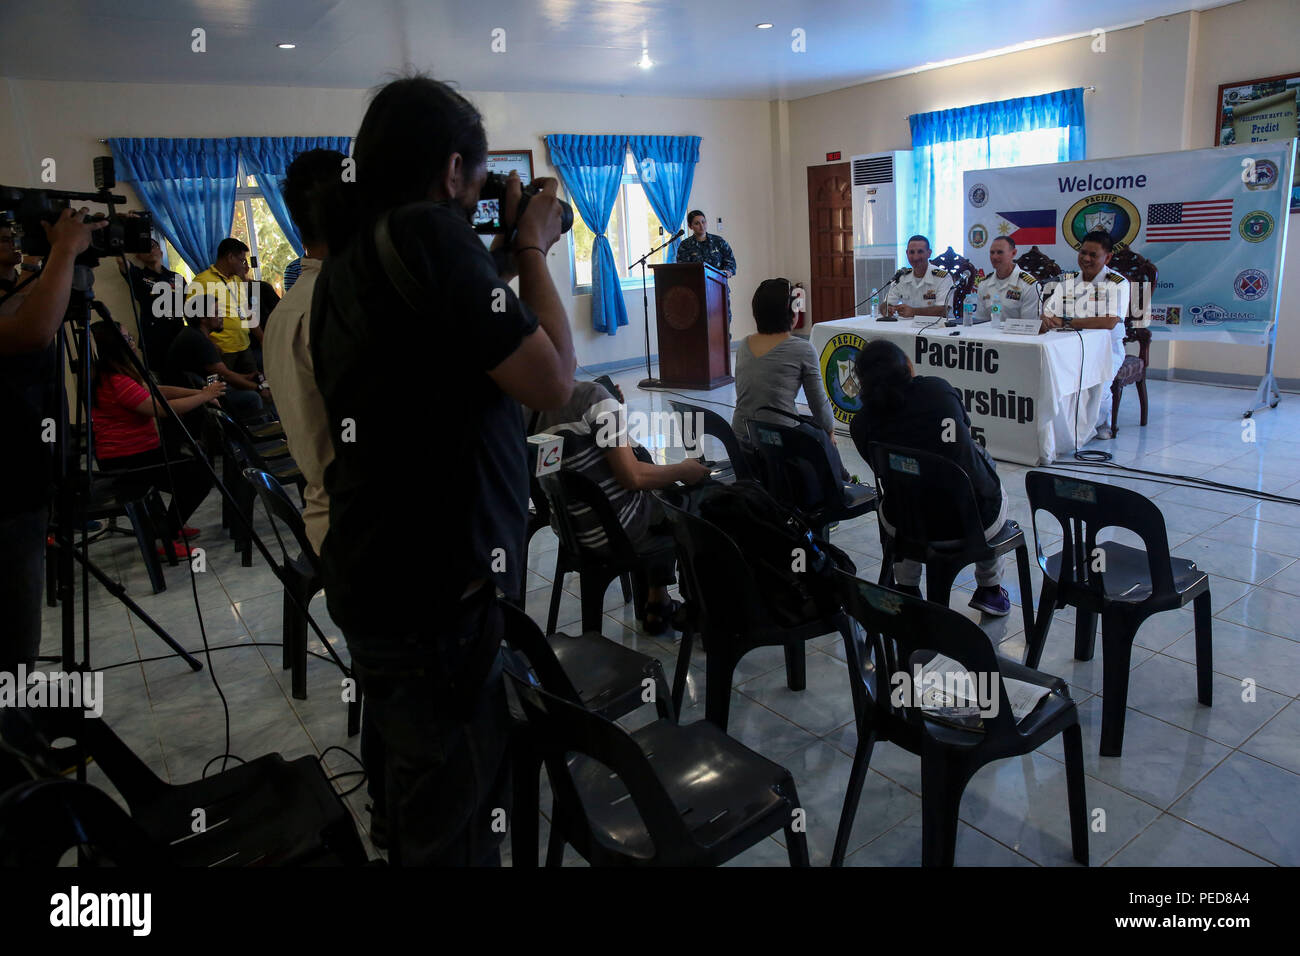 150806-M-GO800-103 SAN FERNANDO CITY, Philippines (August 6, 2015) – Philippine news media asks questions to Pacific Partnership 2015 leadership and Philippine navy leadership, Aug. 6. Task Force Forager will be in the Philippines until August 15 providing medical and engineering assistance. medical and engineering assistance. Task Force Forager, embarked aboard the Military Sealift Command joint high speed vessel USNS Millinocket (JHSV 3) is serving as the secondary platform for Pacific Partnership, led by an expeditionary command element from the Navy's 30th Naval Construction Regiment (30 N - Stock Image